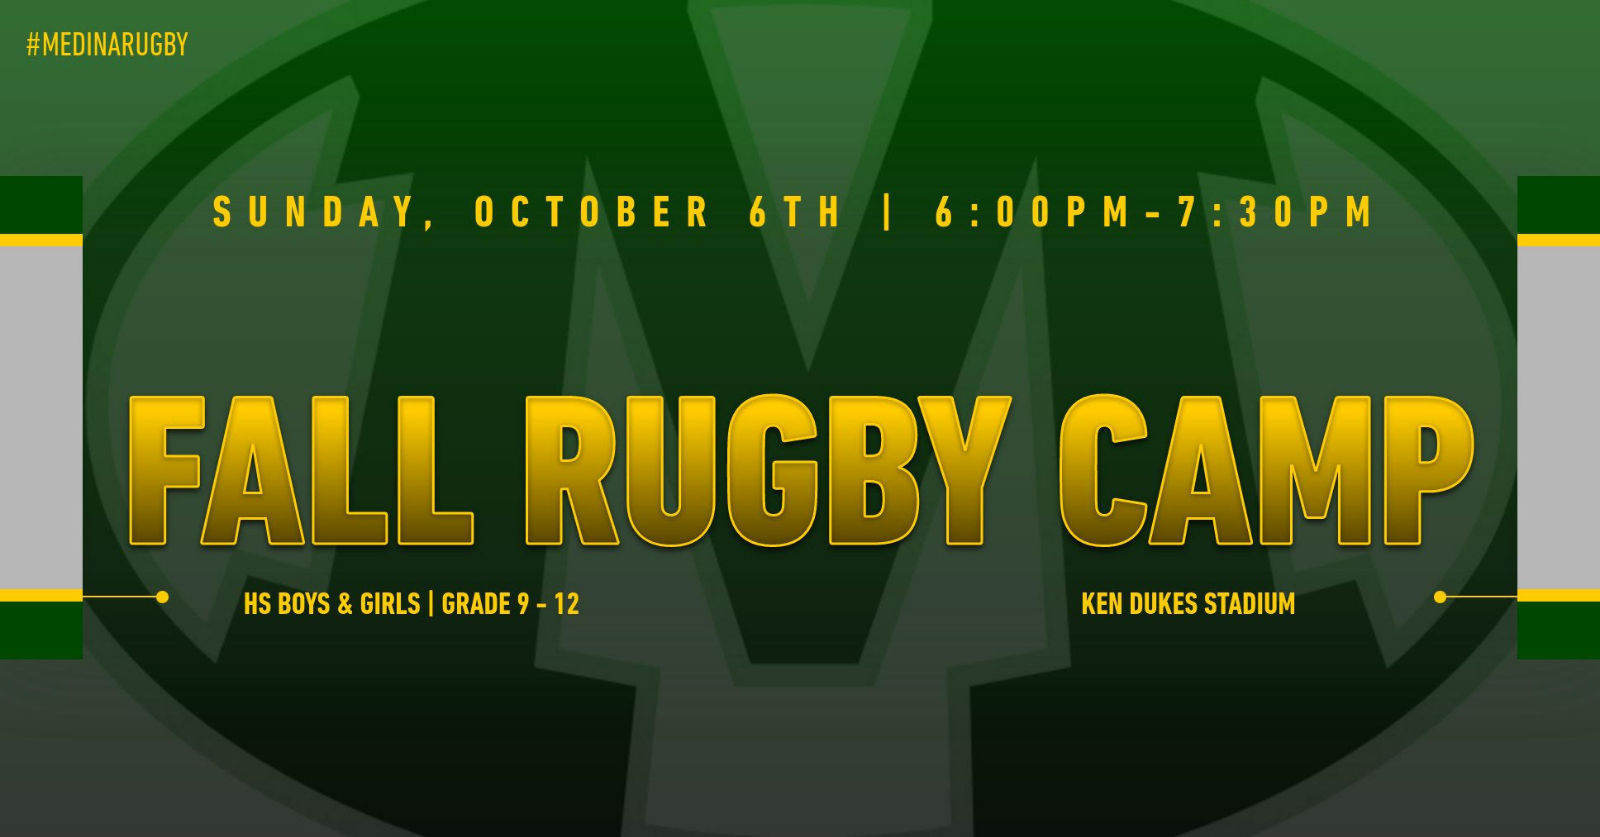 Fall Rugby Camp 10/6